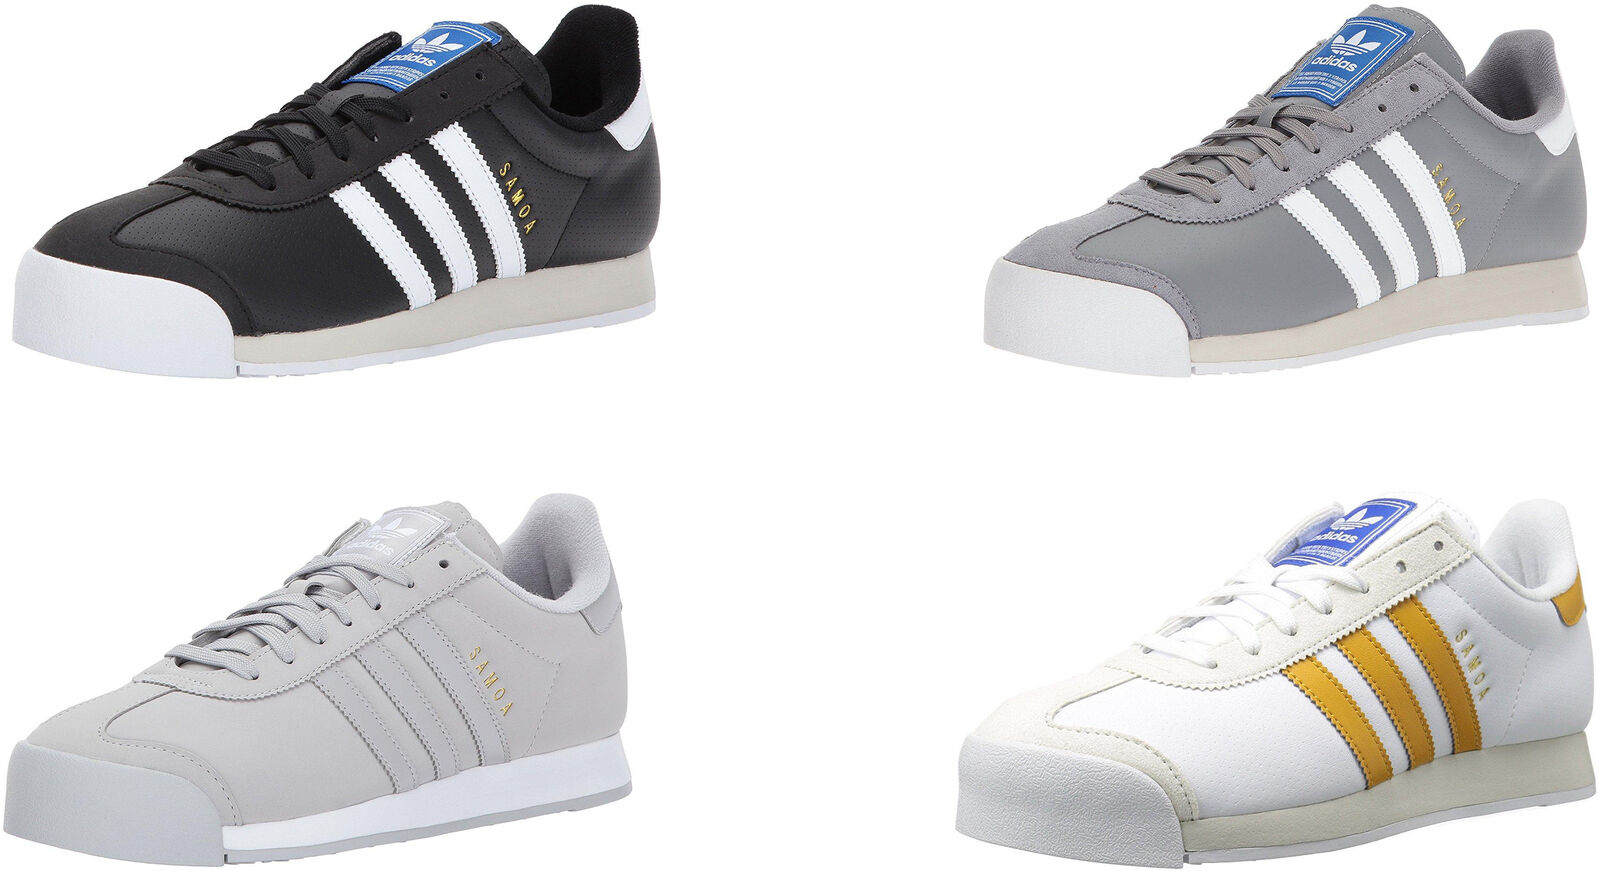 adidas Originals Men's Samoa Shoes, 4 Colors